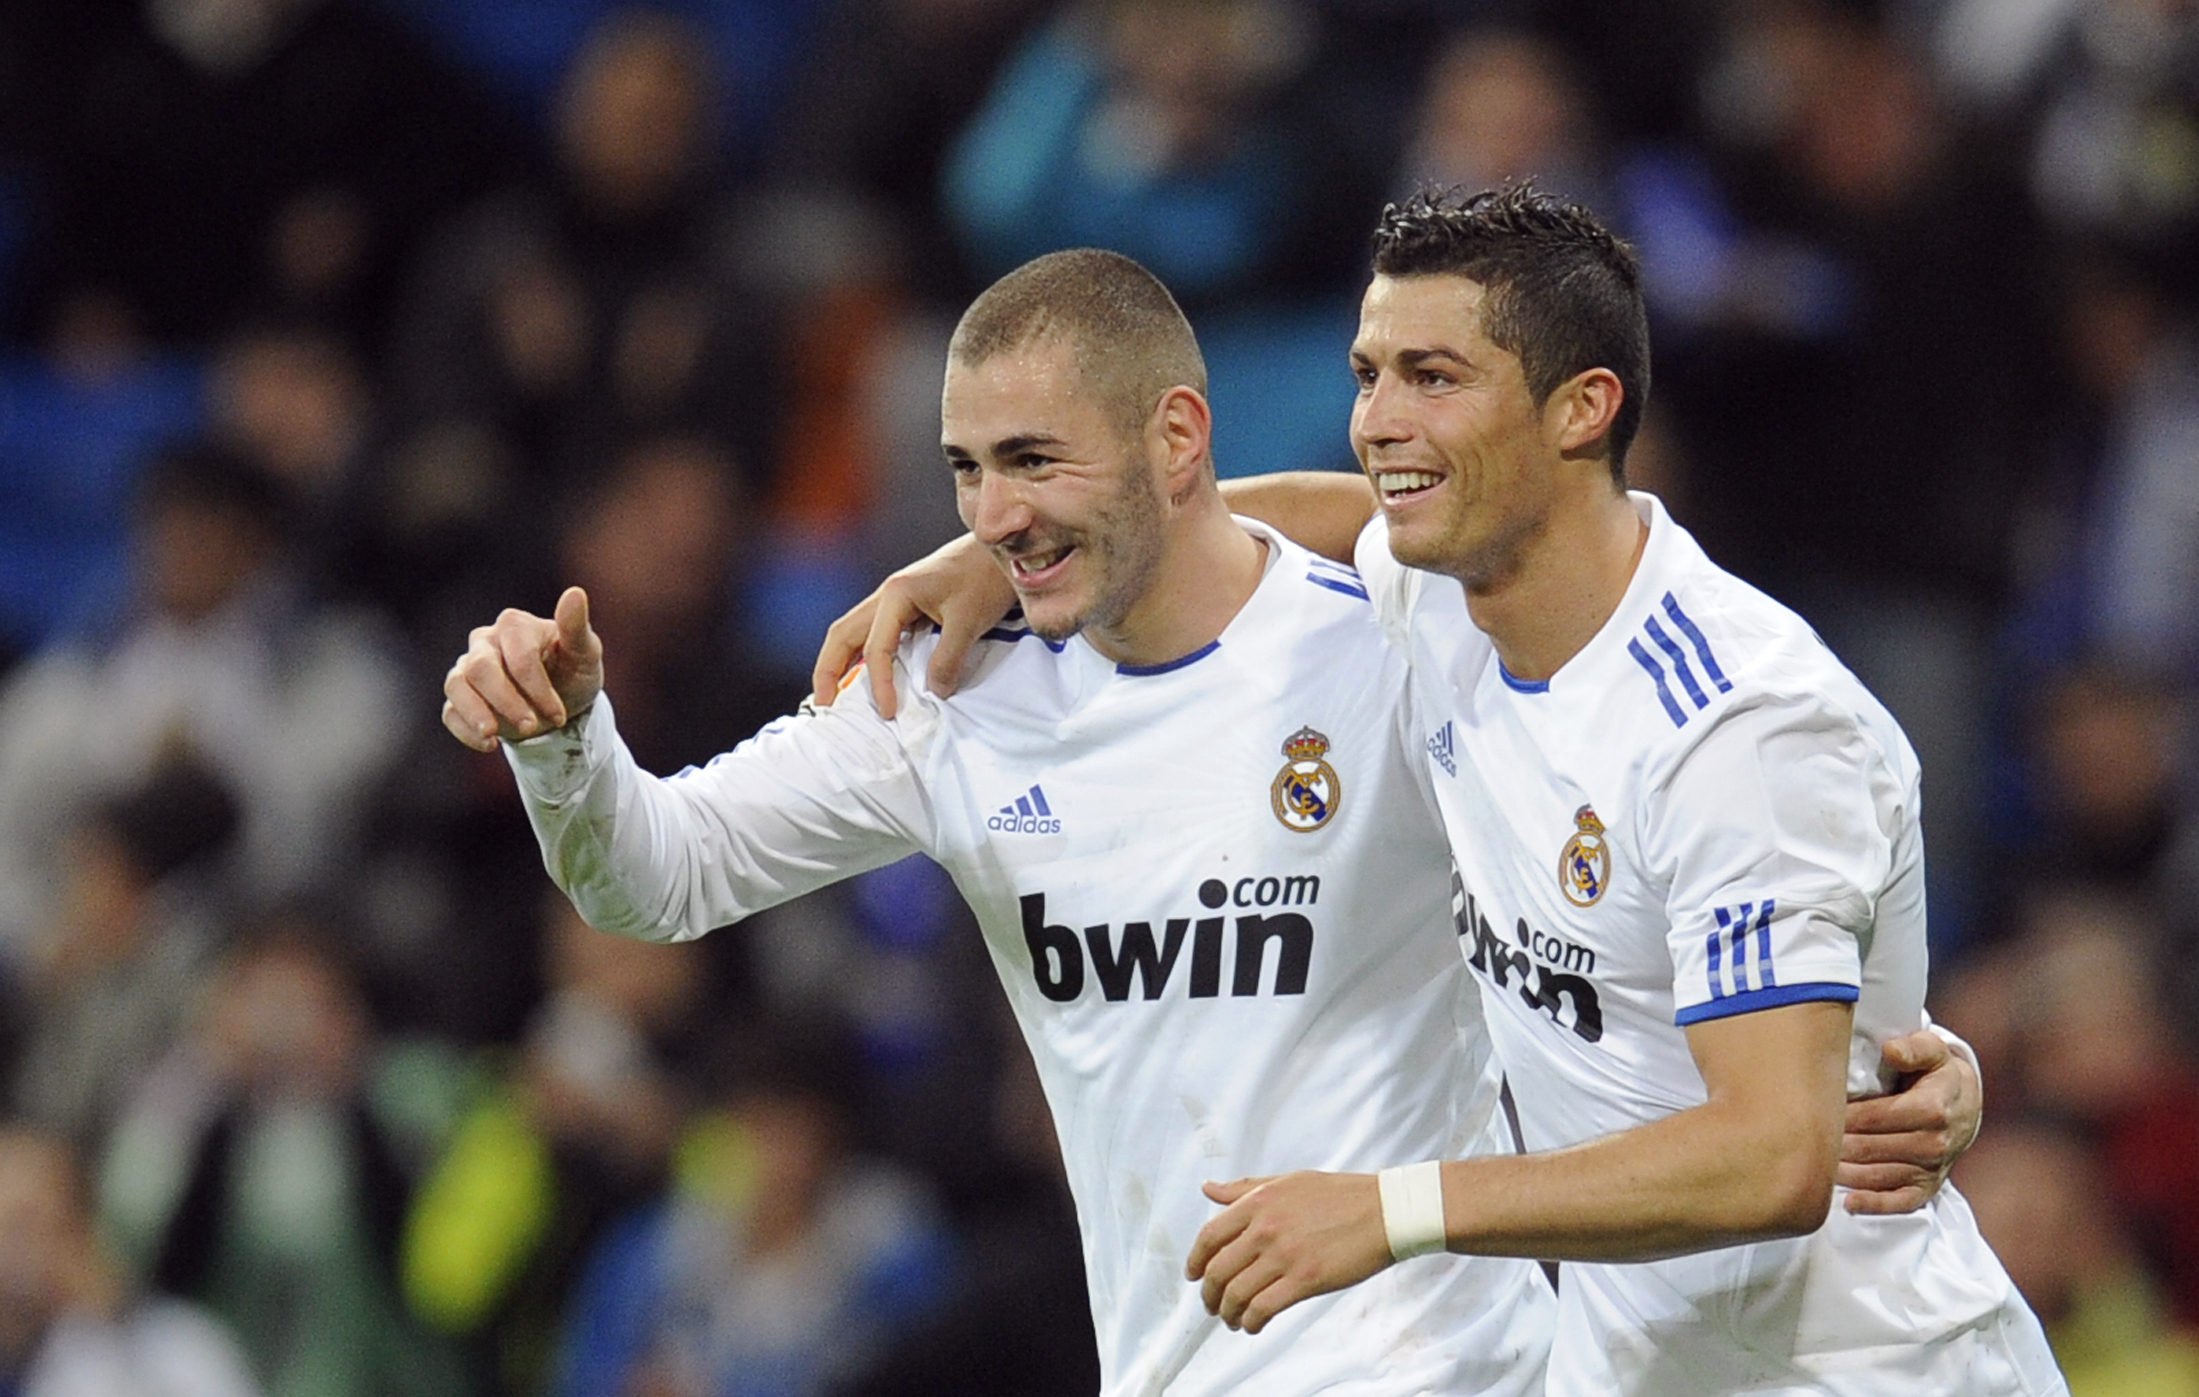 Real Madrid's Benzema celebrates his goal with teammate Ronaldo during their Spanish King's Cup soccer match at Santiago Bernabeu stadium in Madrid